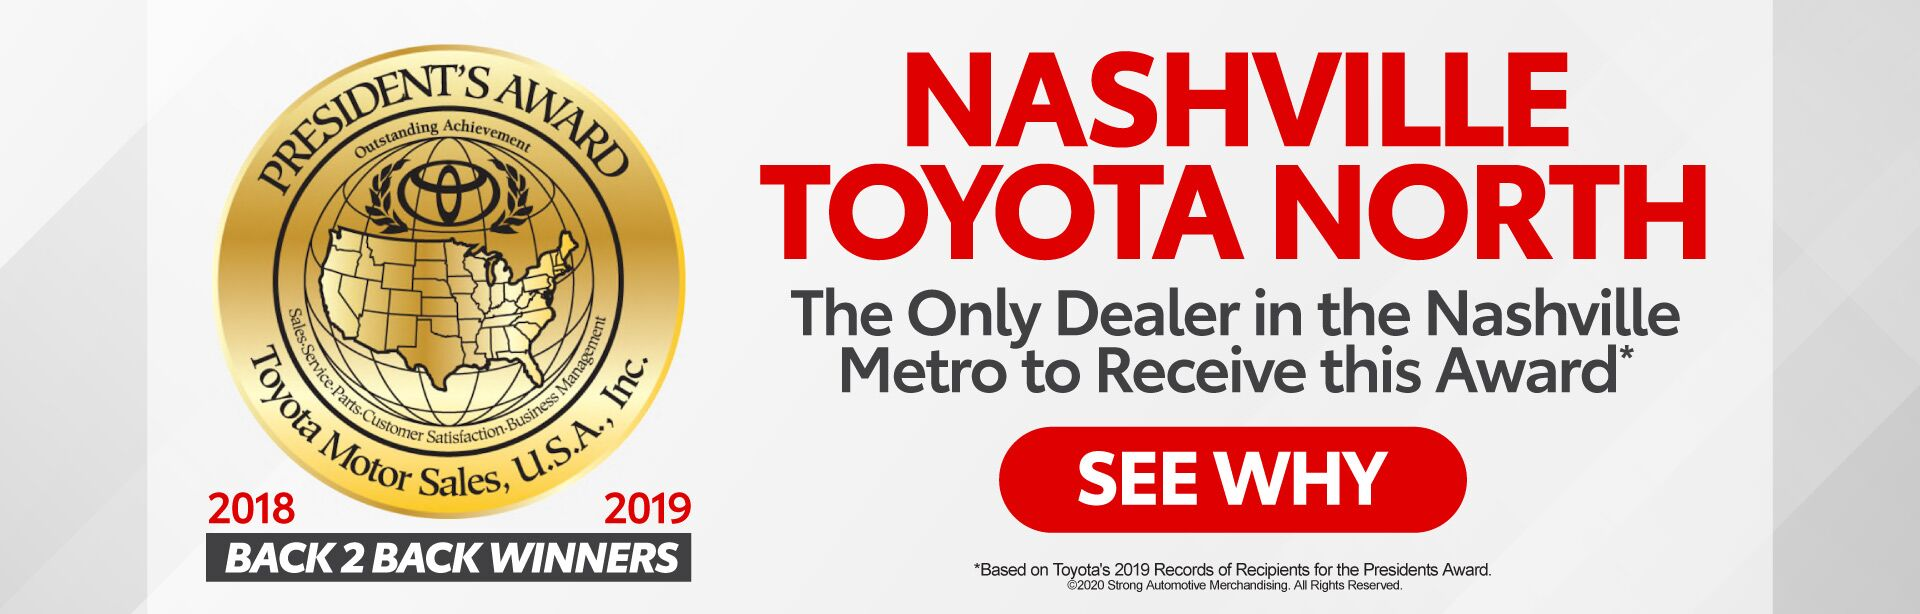 Nashville Toyota North is the only dealer in the Nashville Metro to Receive the President's Award - Click to See Why